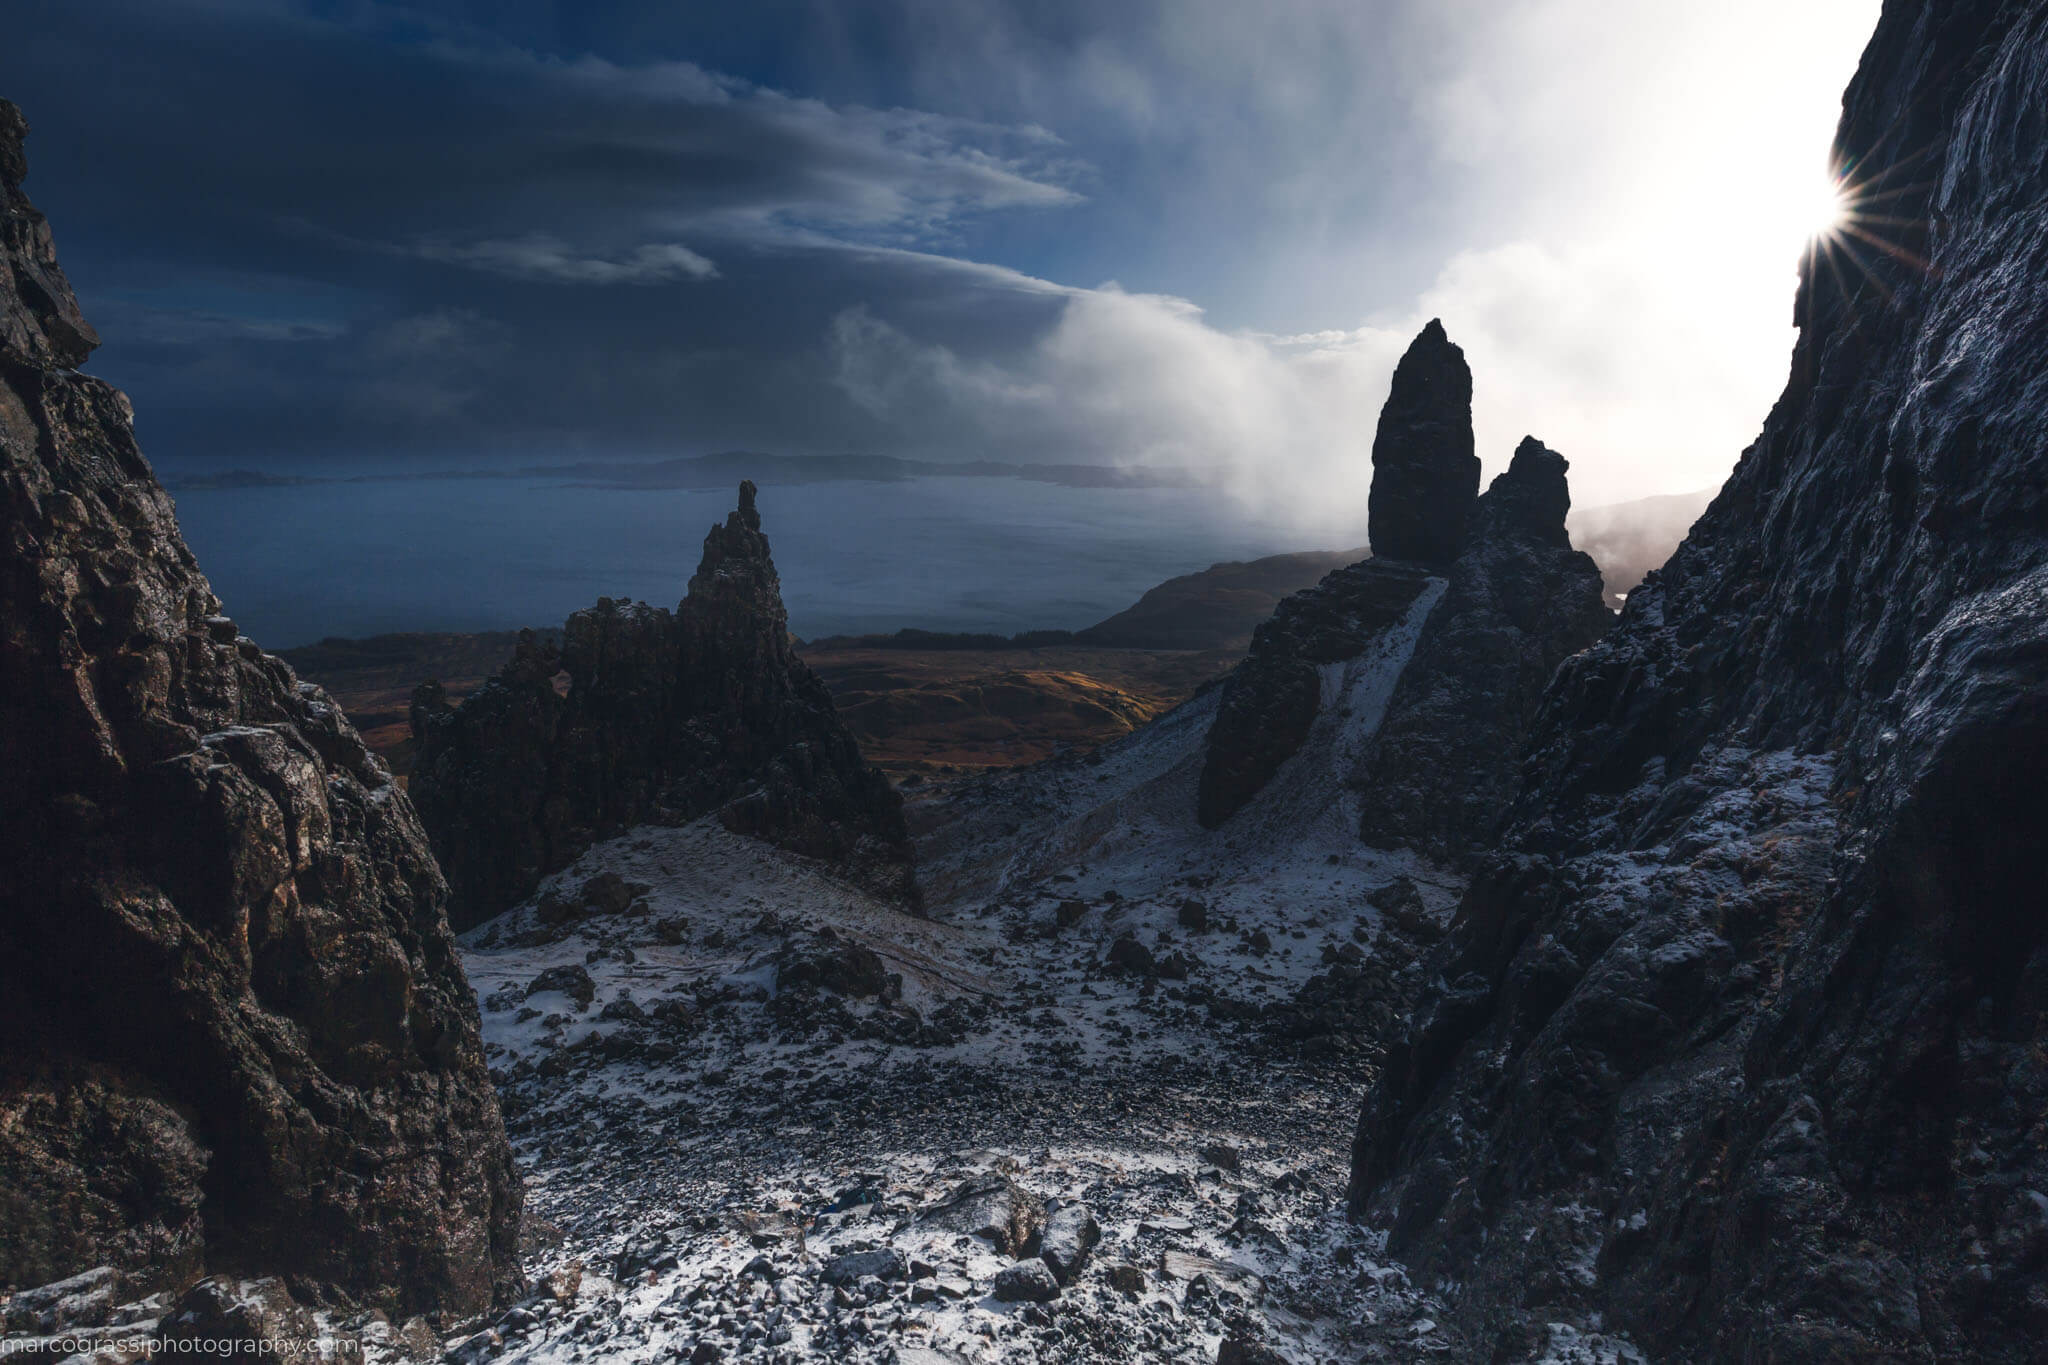 Snowstorm at the Old Man of Storr on the Isle of Skye, Scotland